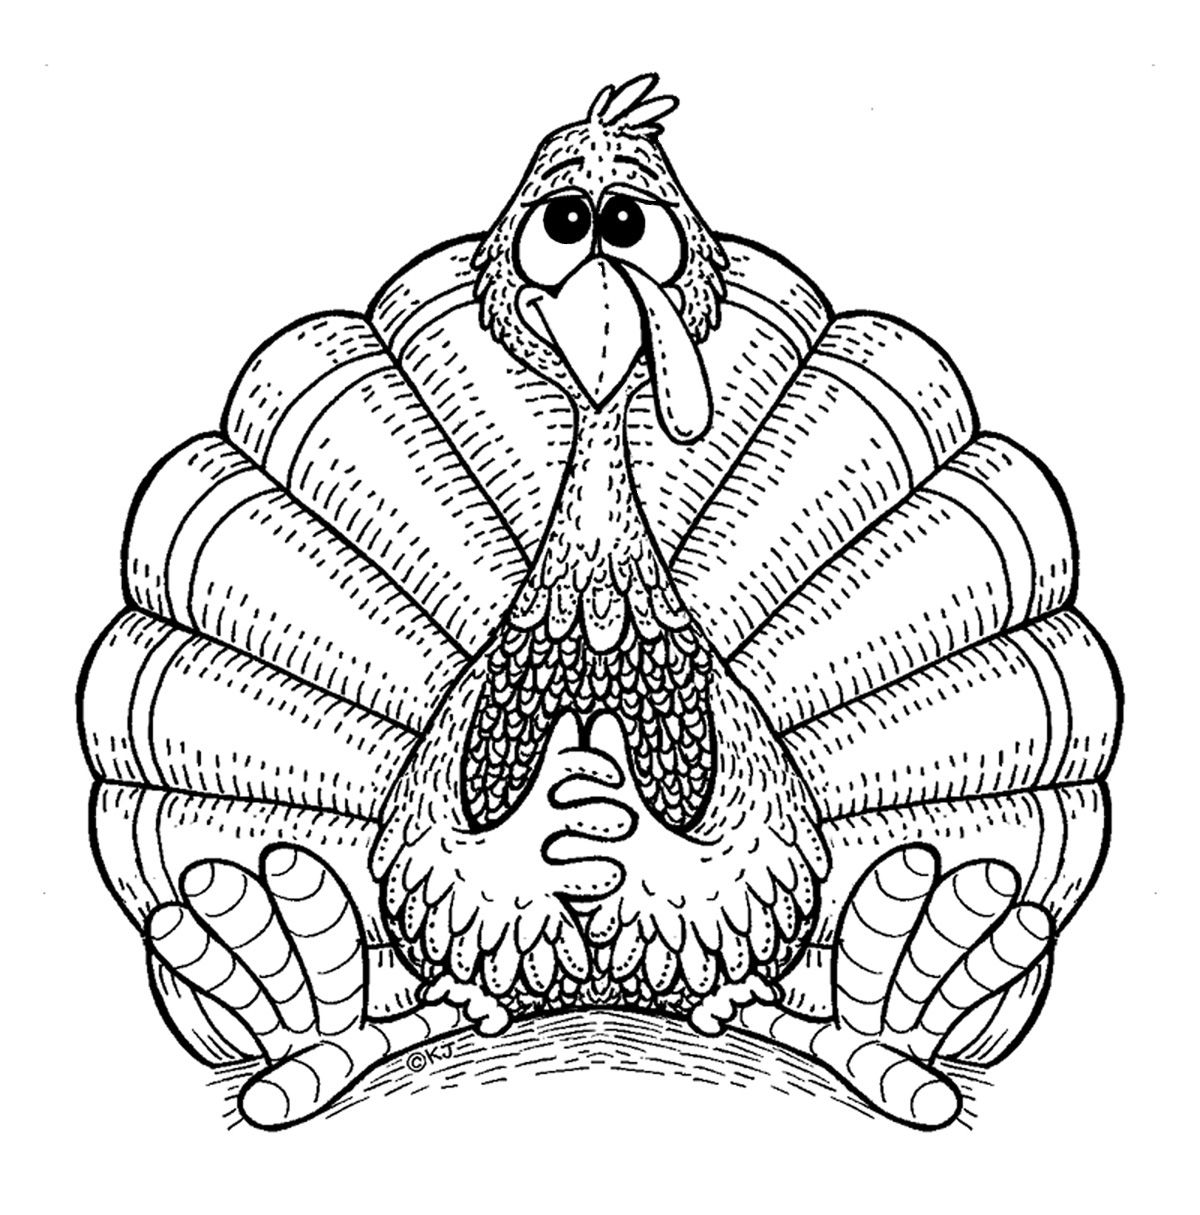 Coloring Hand Pages Turkey 2020 Check More At Https Mister